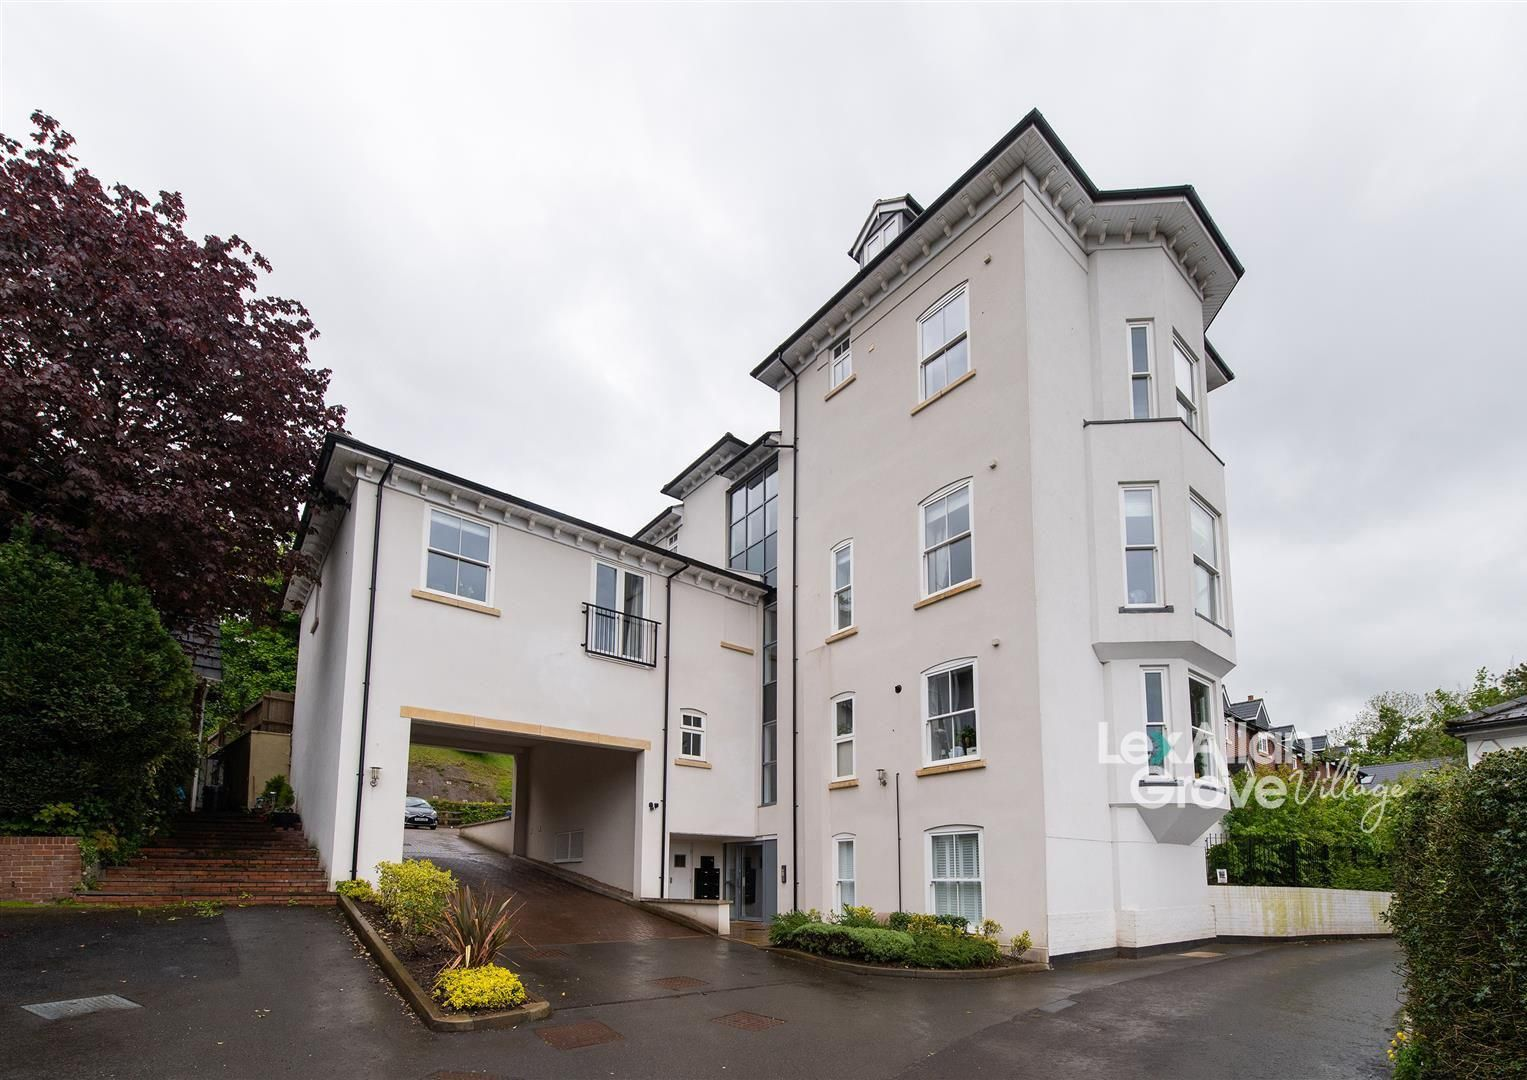 2 bed apartment for sale in Clent, DY9